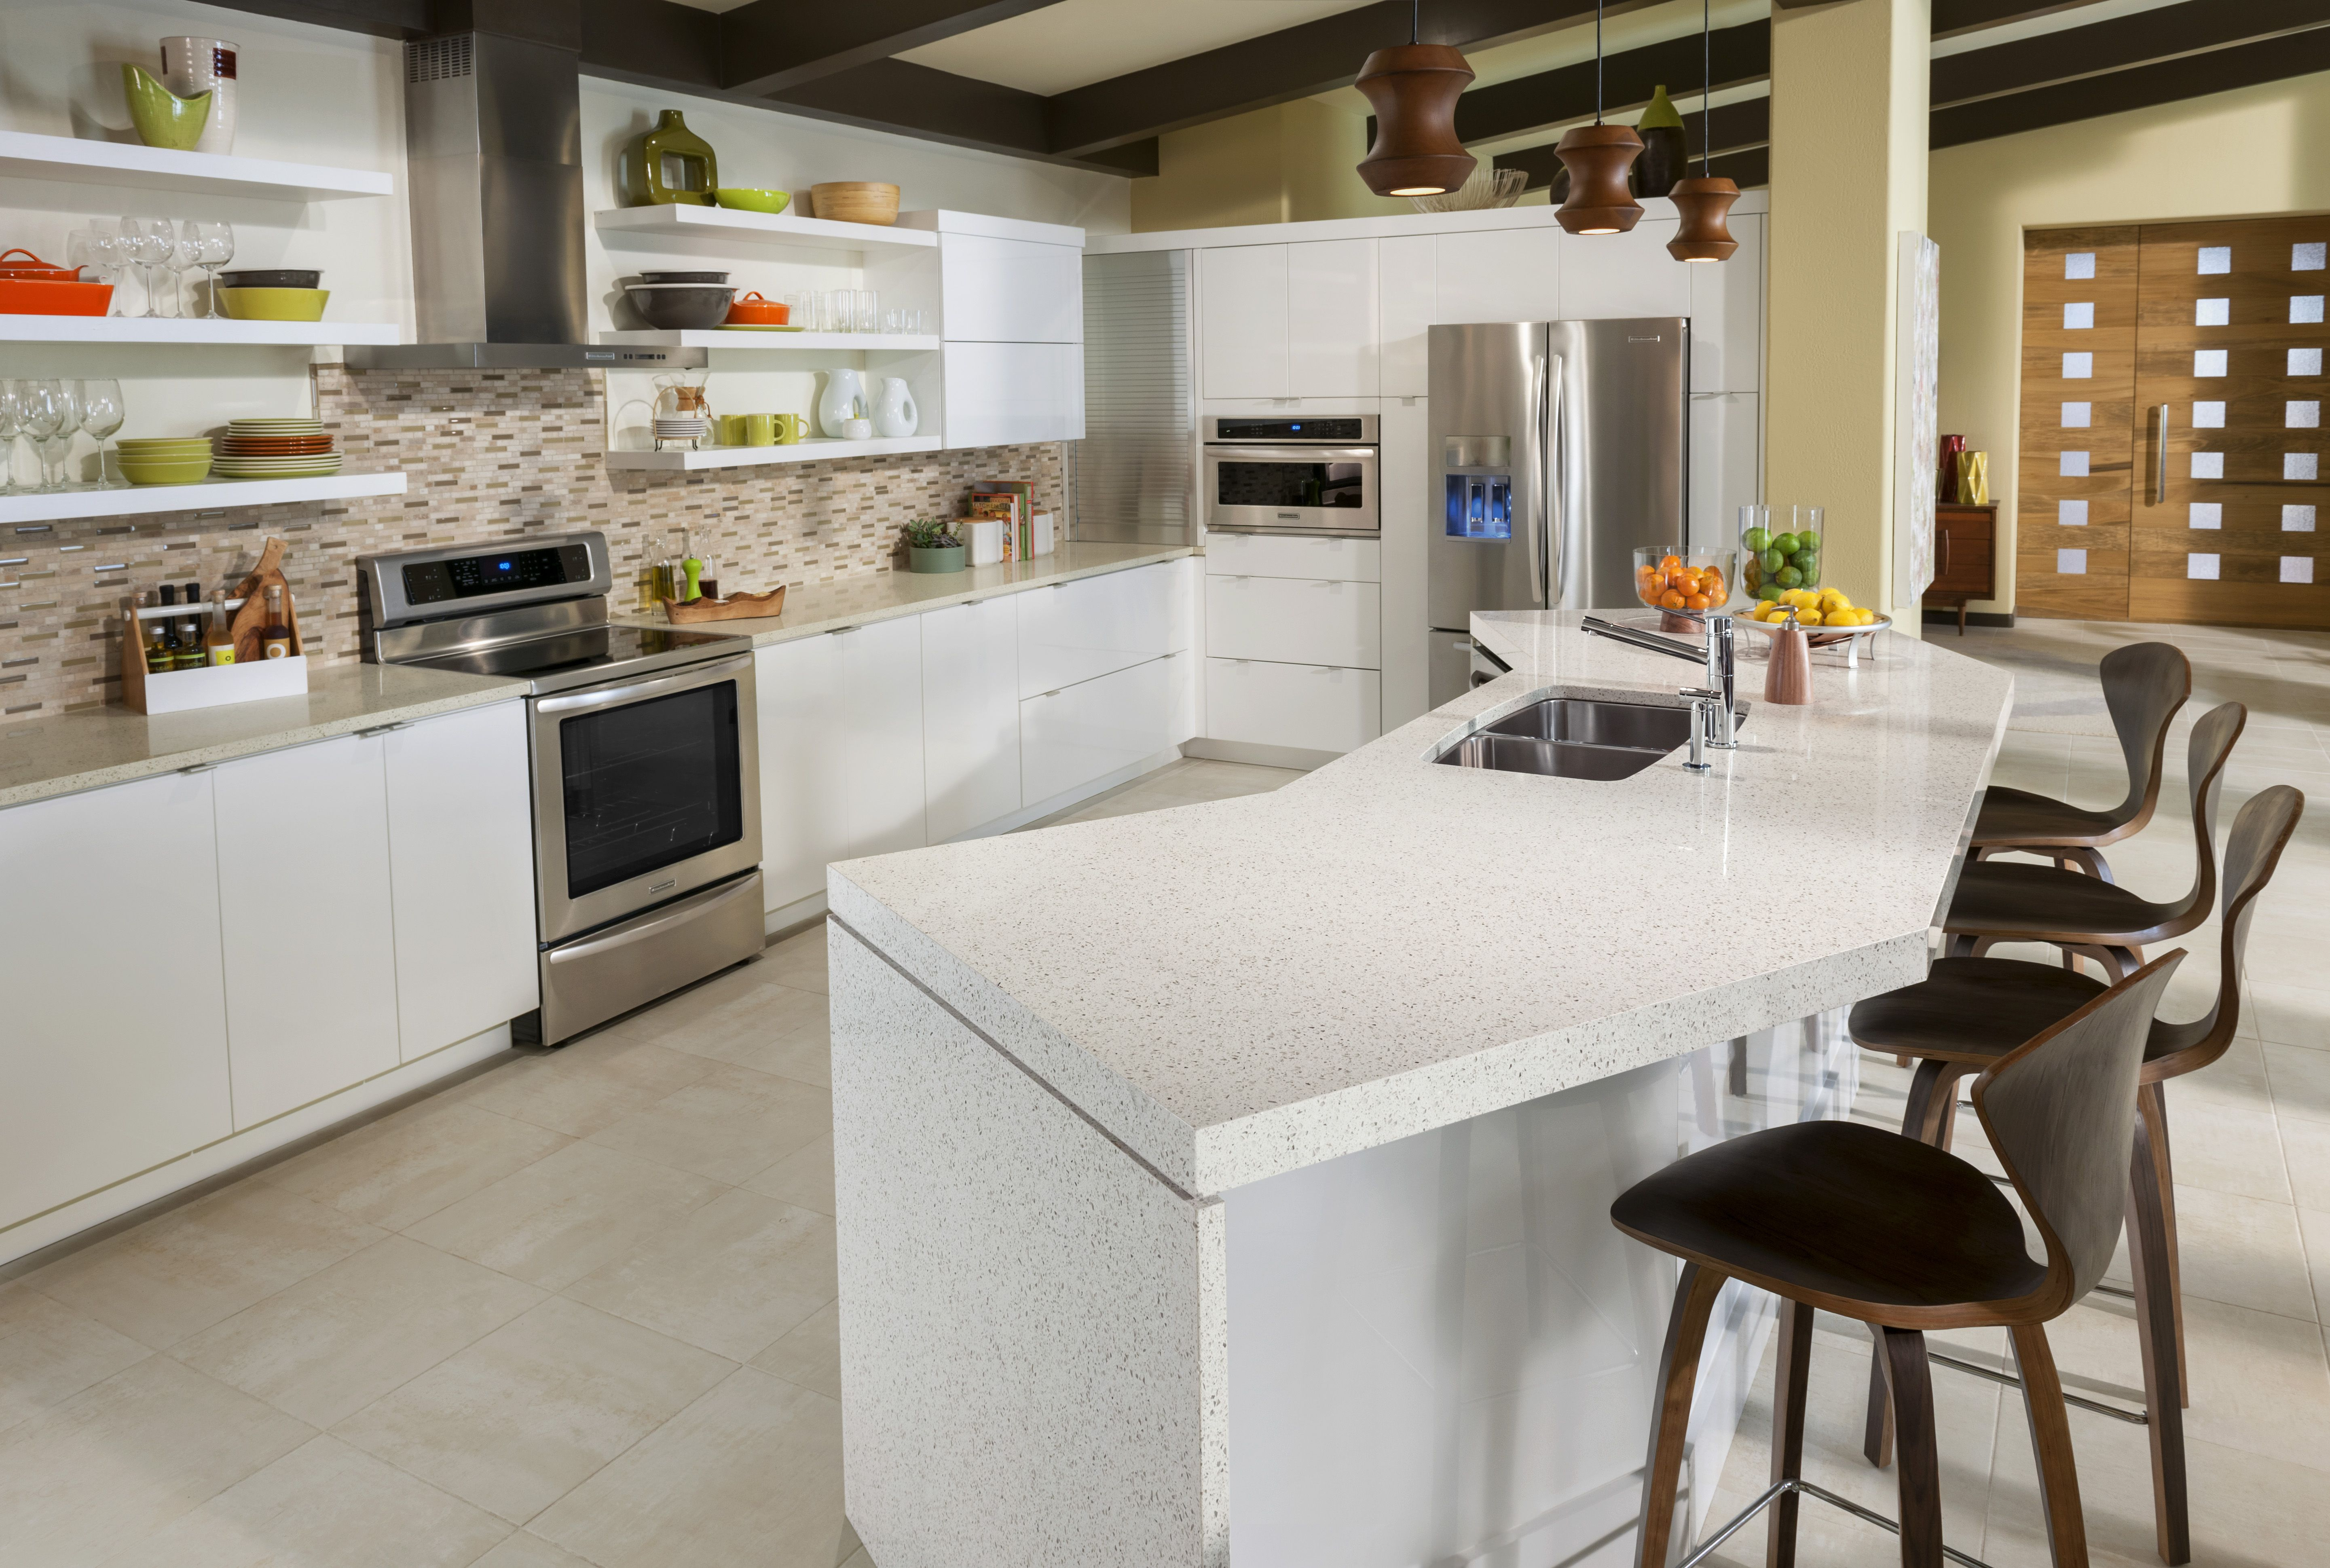 geos kona recycled glass countertops | recycled glass countertops